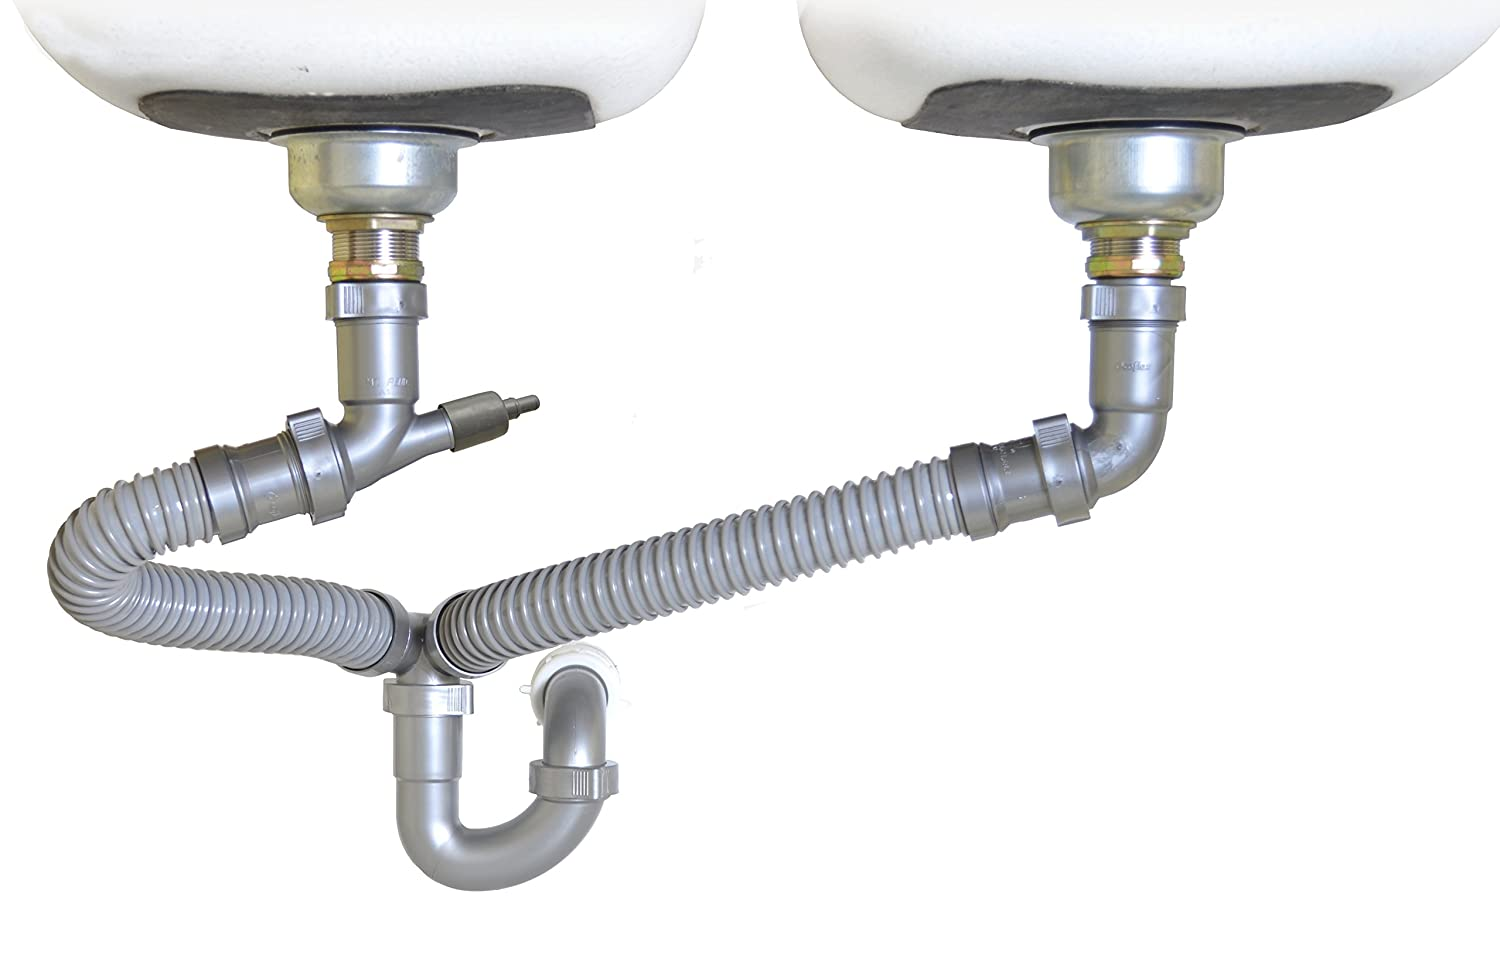 Snappy Trap 1 1 2 All In One Drain Kit For Double Bowl Kitchen Sinks Amazon In Home Improvement